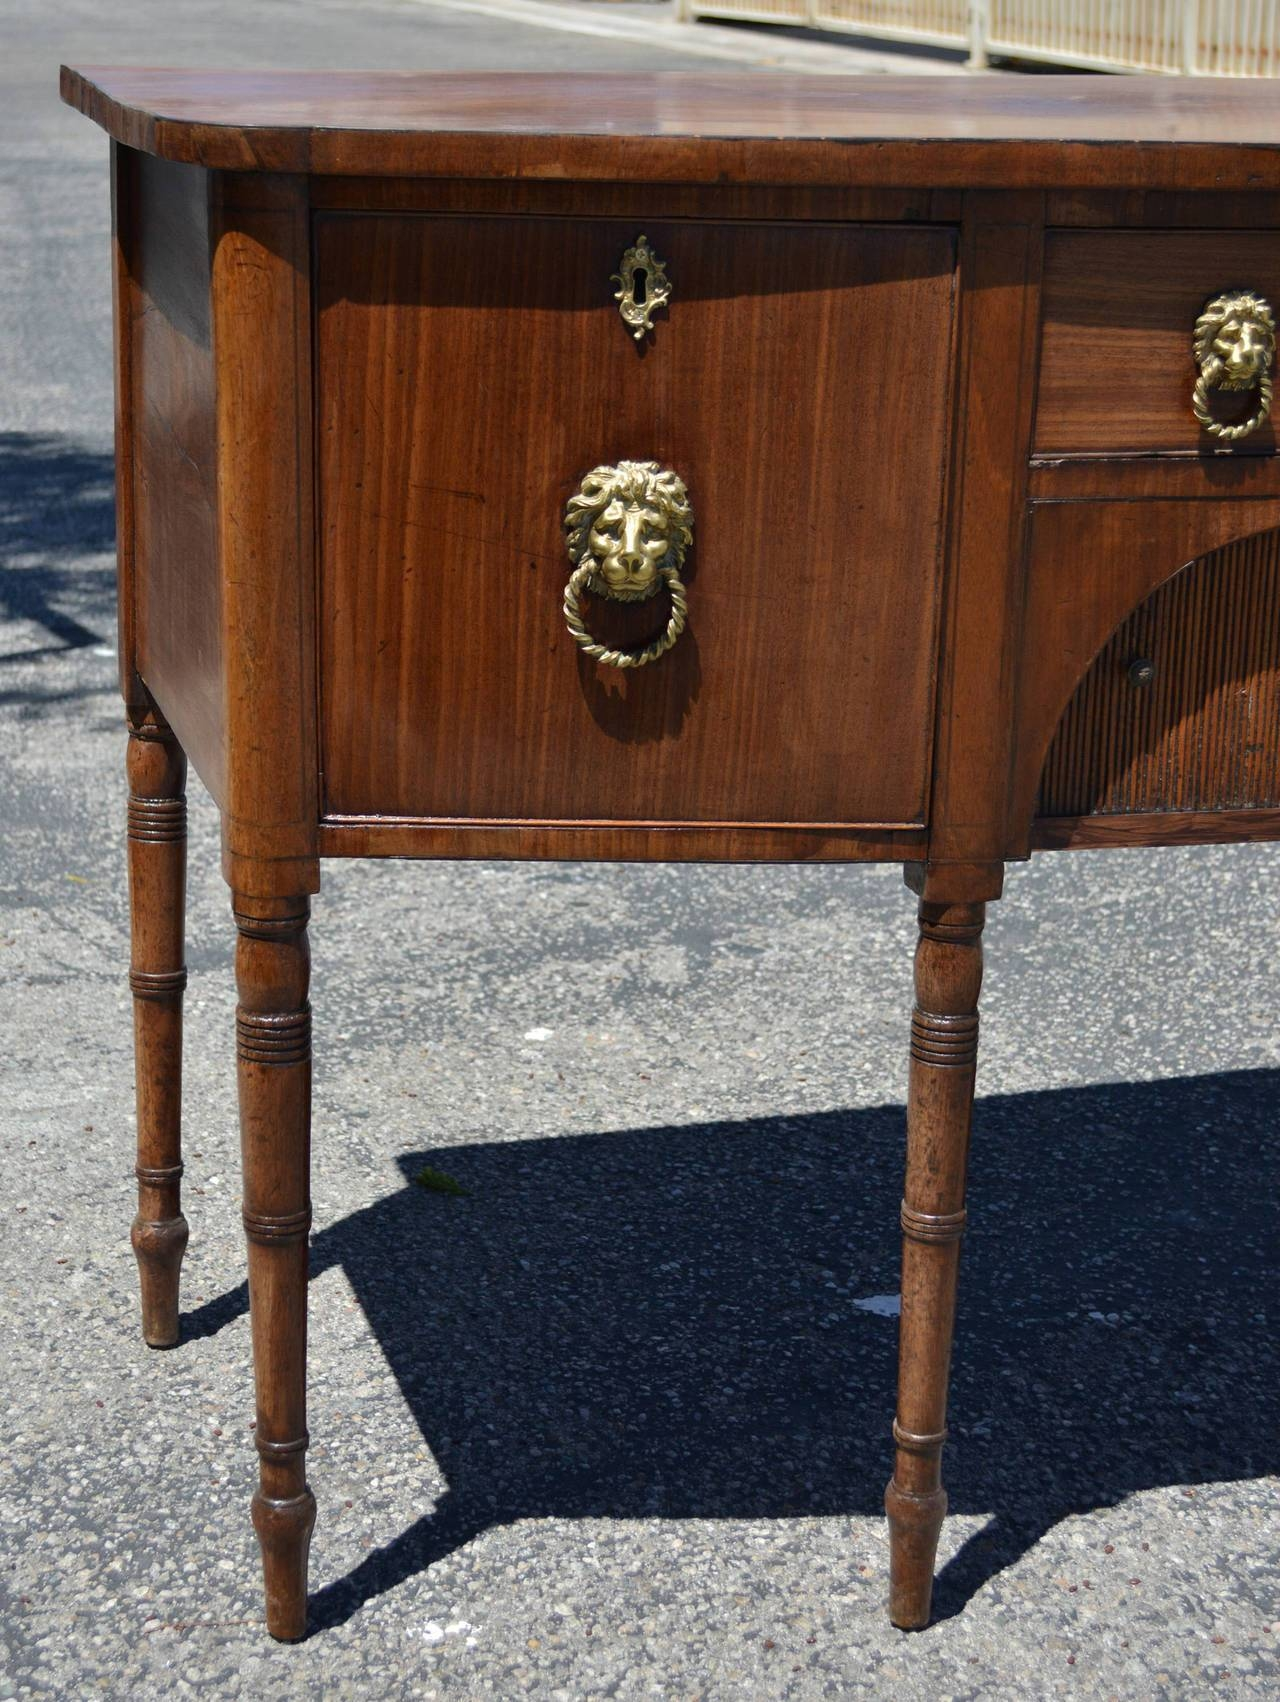 19Th Century Regency English Mahogany Sideboard For Sale At 1Stdibs Pertaining To Sideboard Sale (#3 of 20)